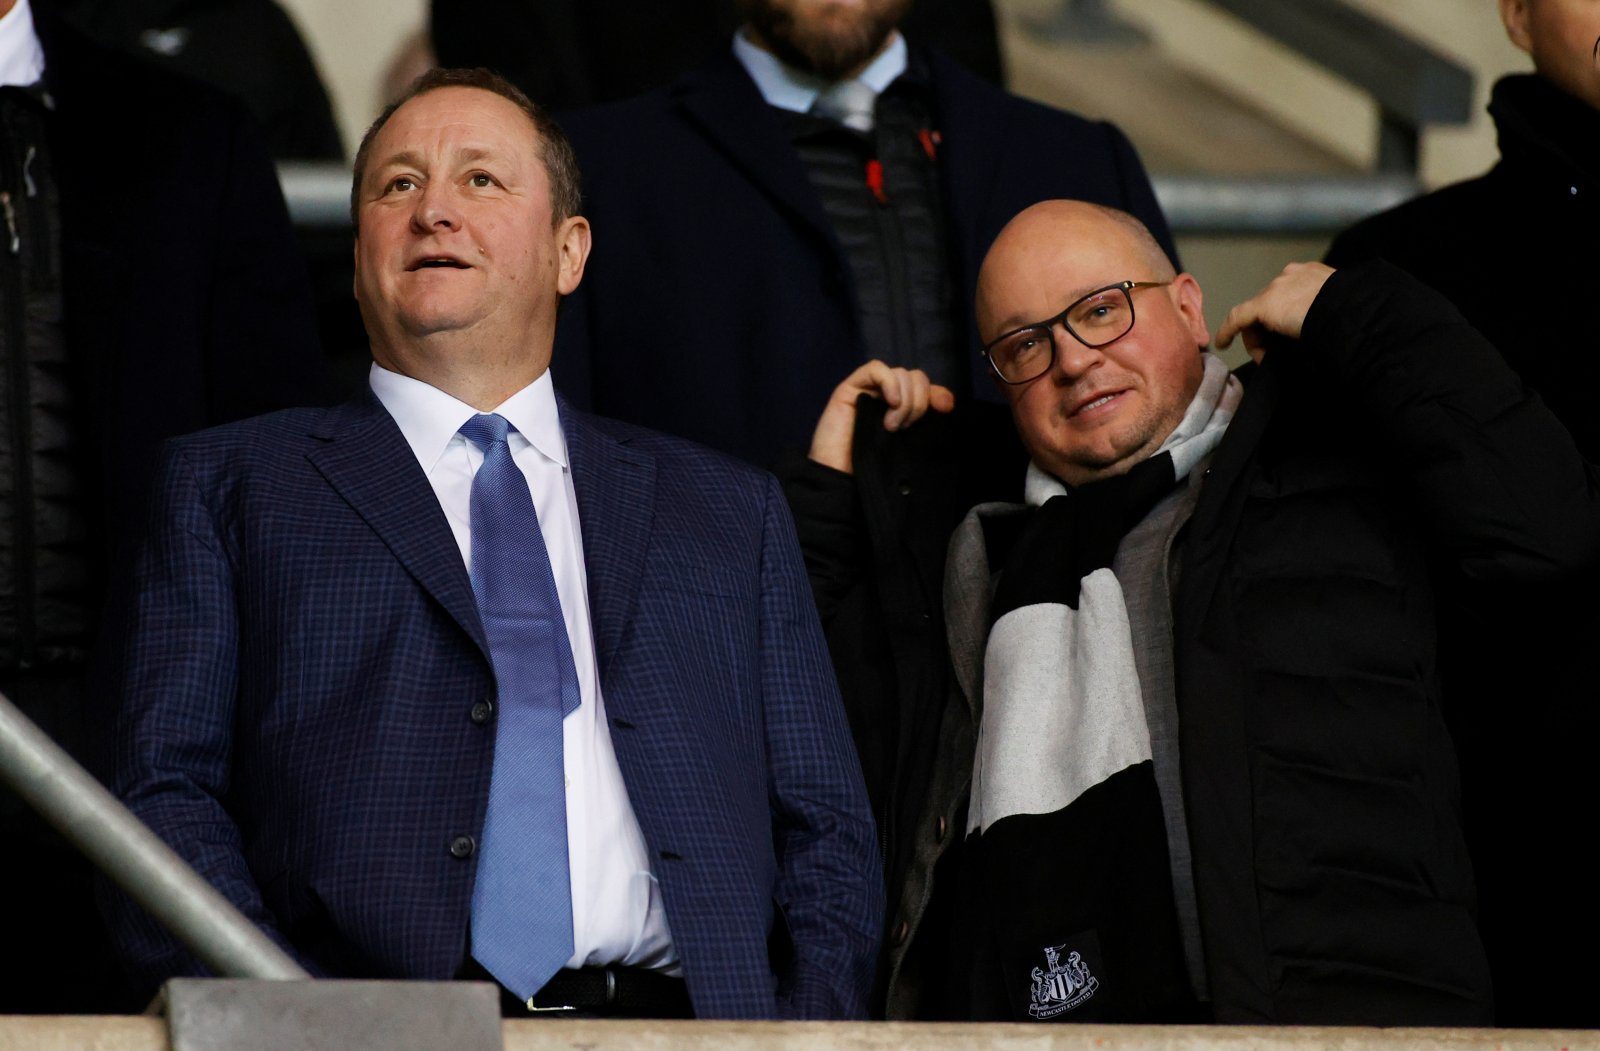 The PIF takeover of Newcastle will see the end of this man on Tyneside - Mike Ashley.